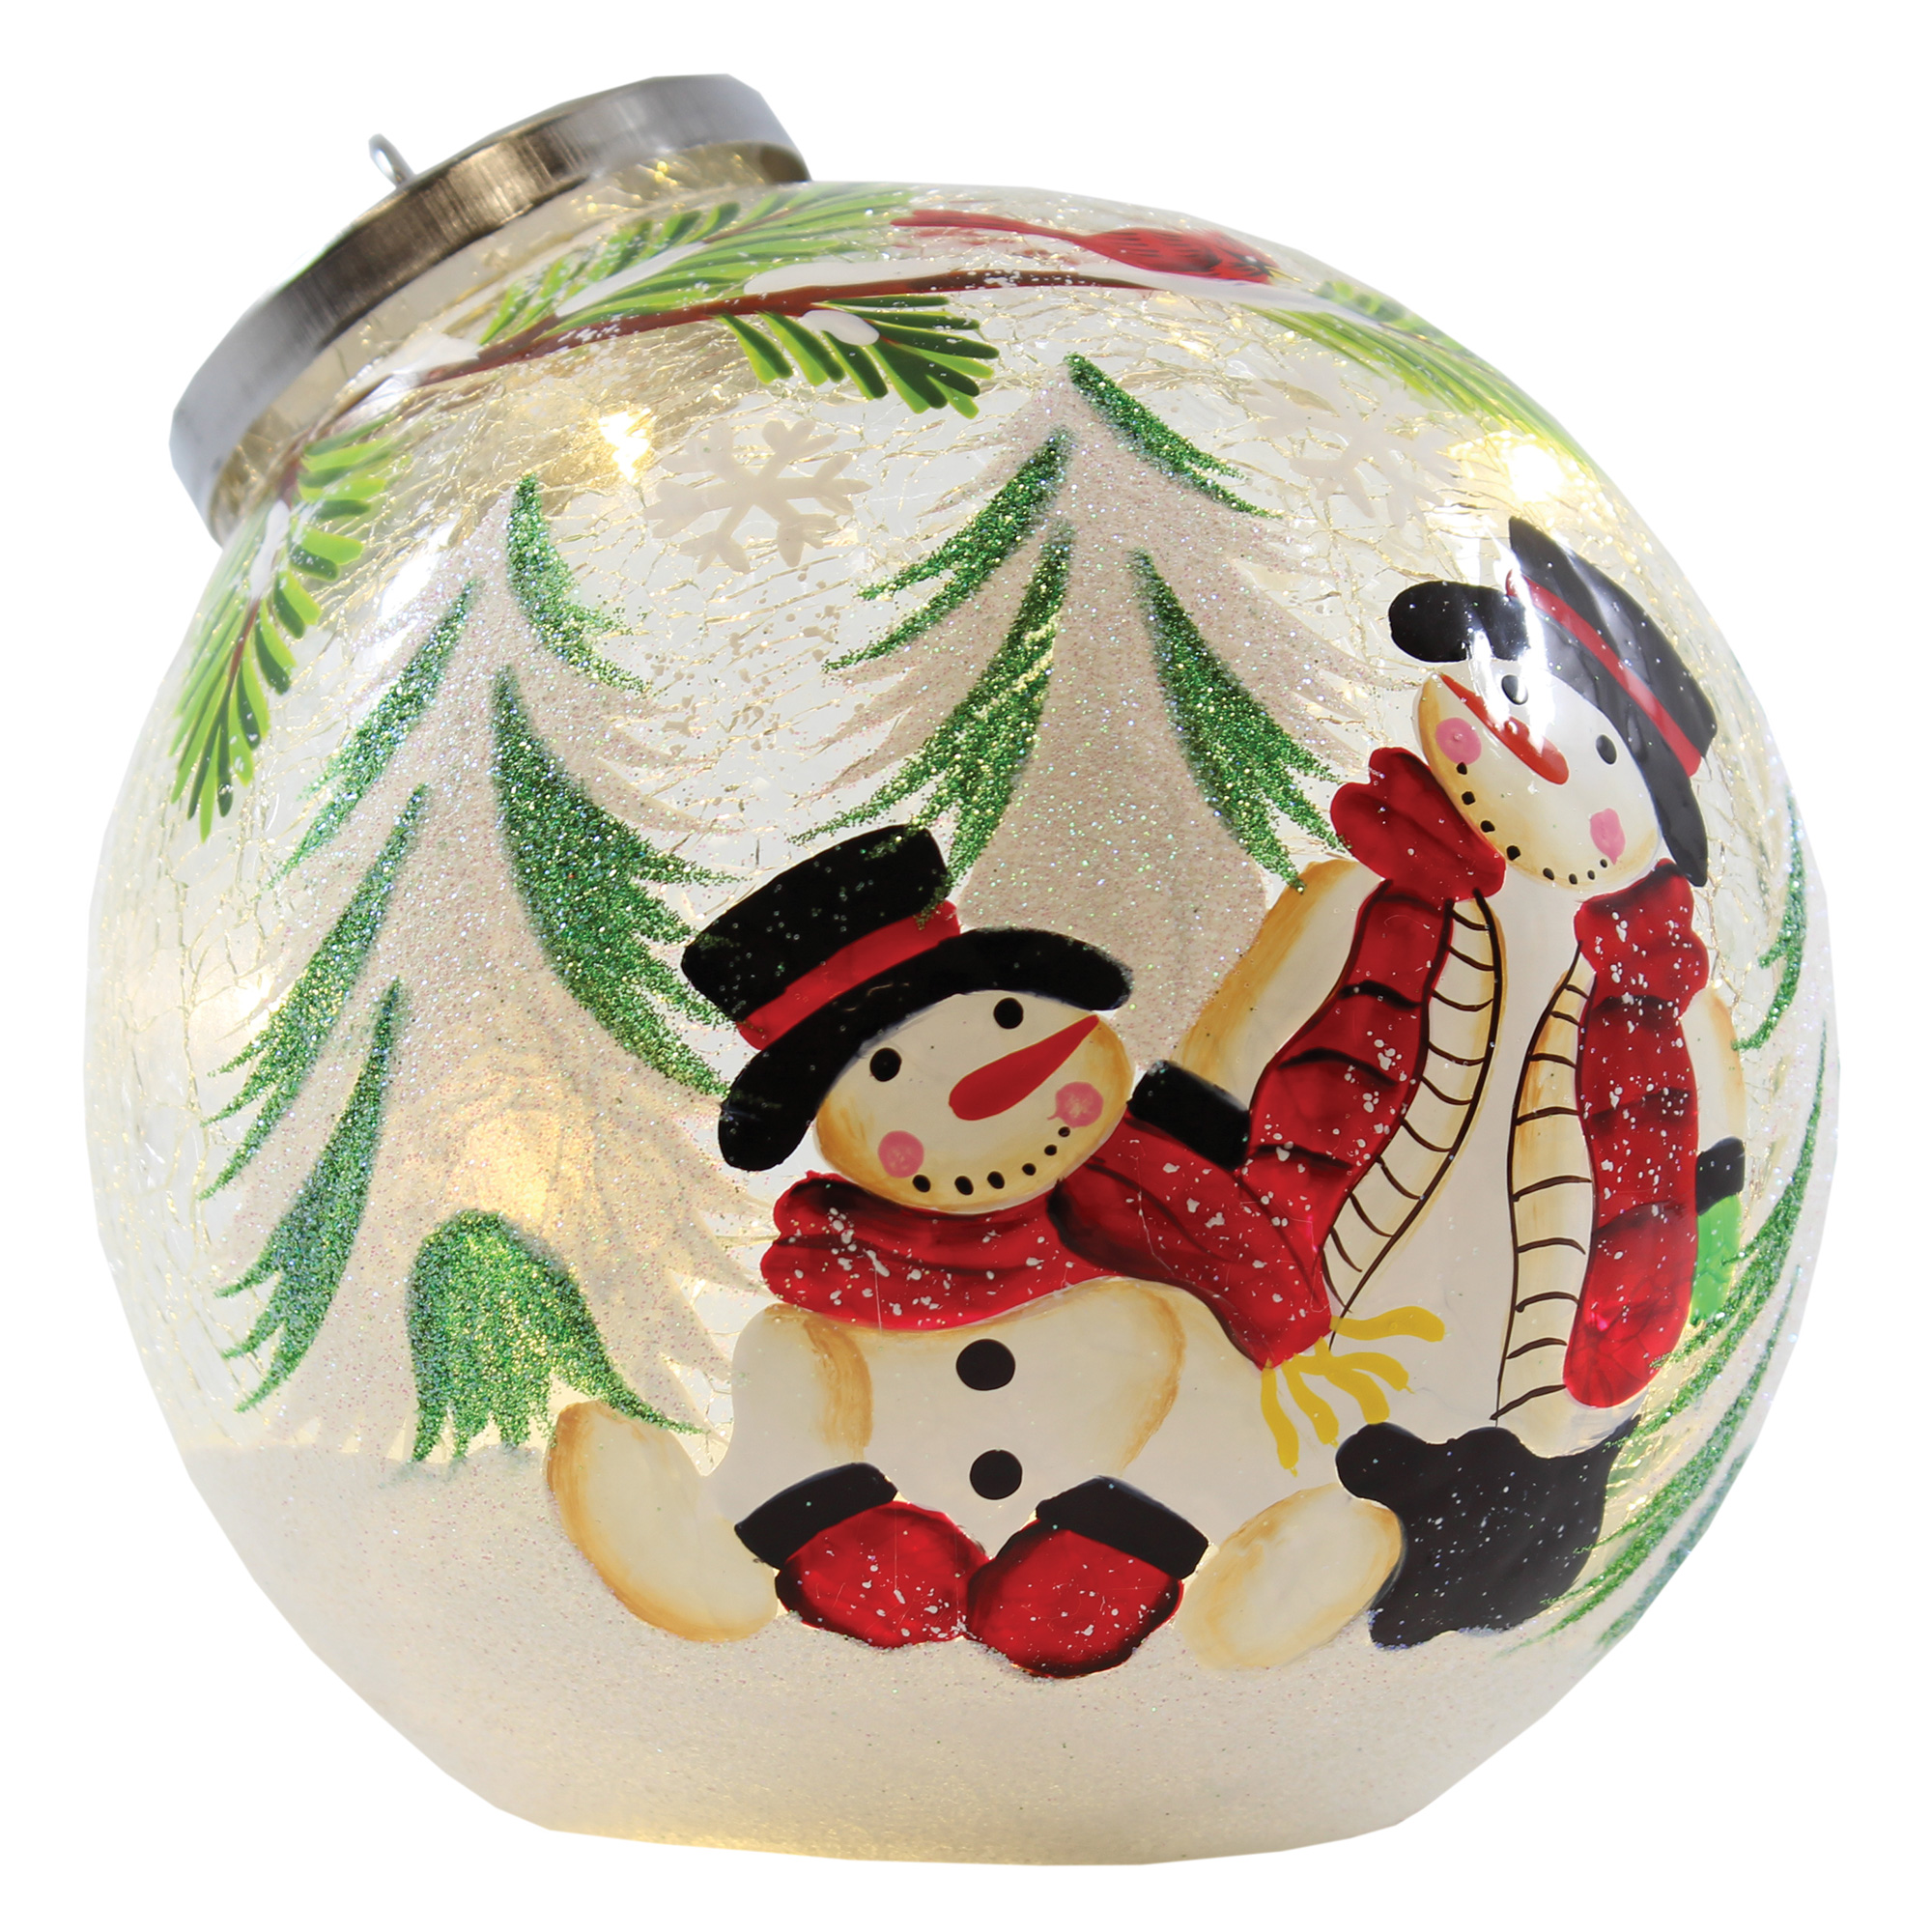 TWO WILLIES ORNAMENT